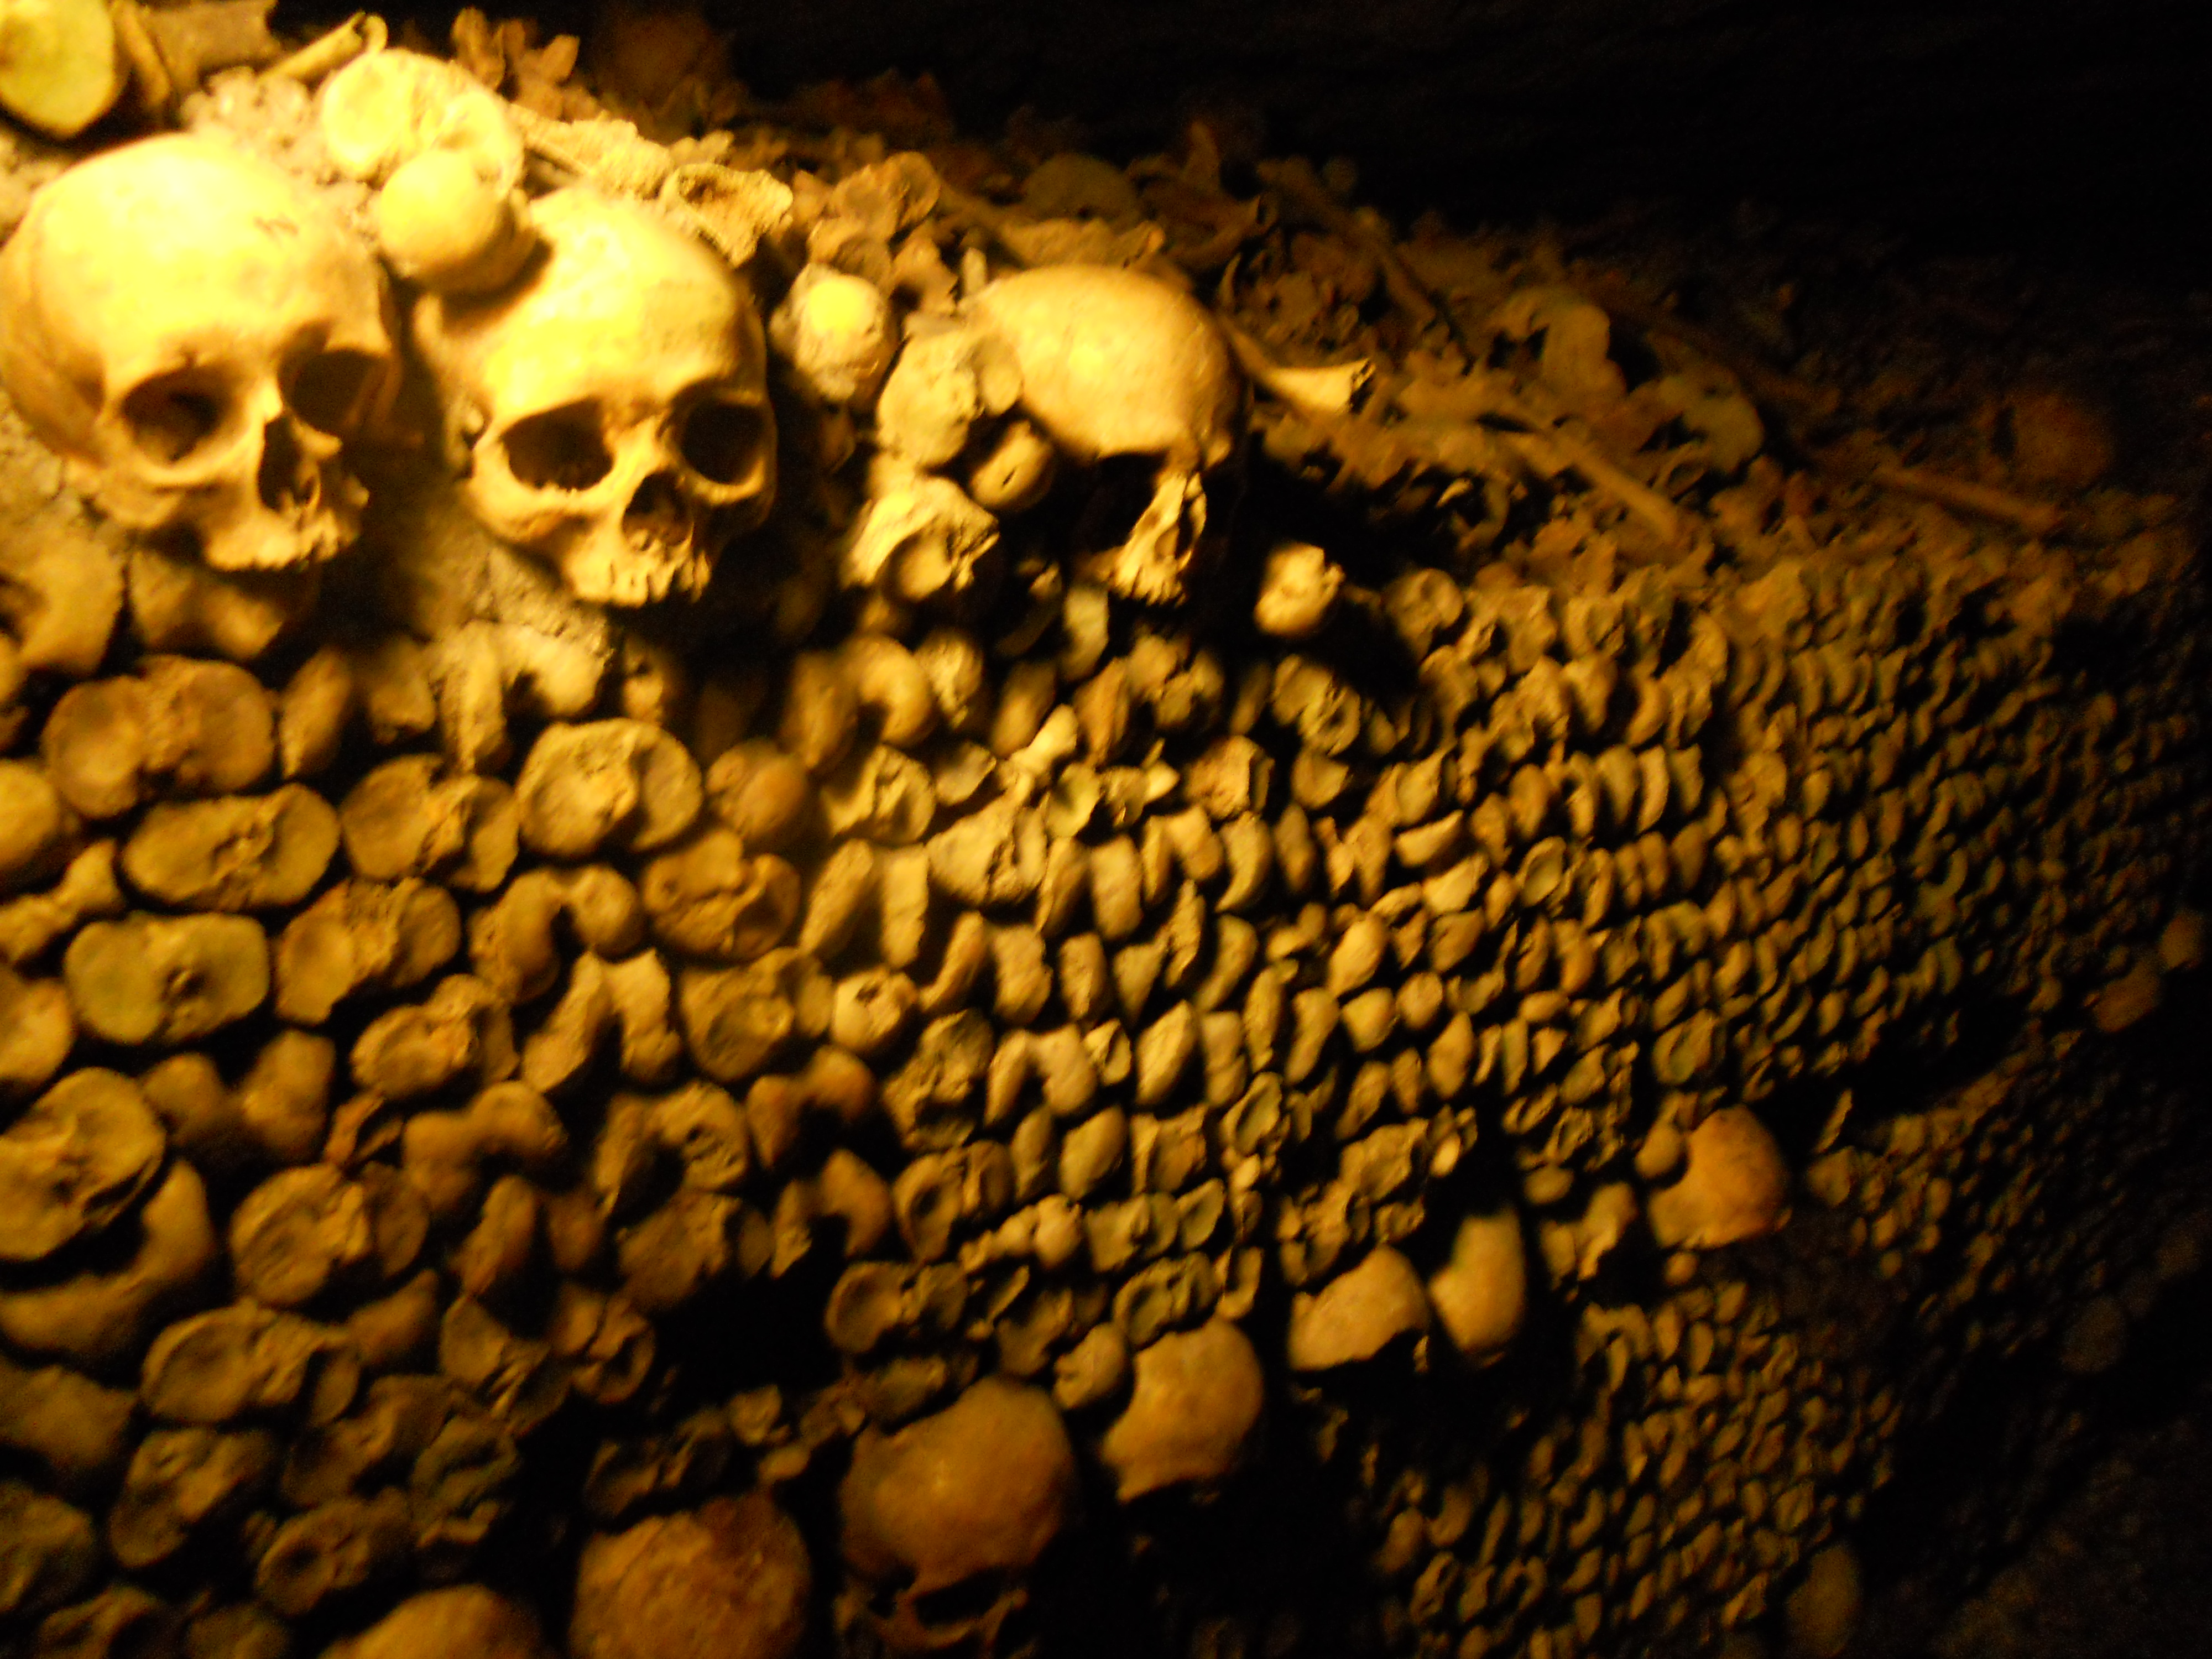 Guided tours of the French catacombs